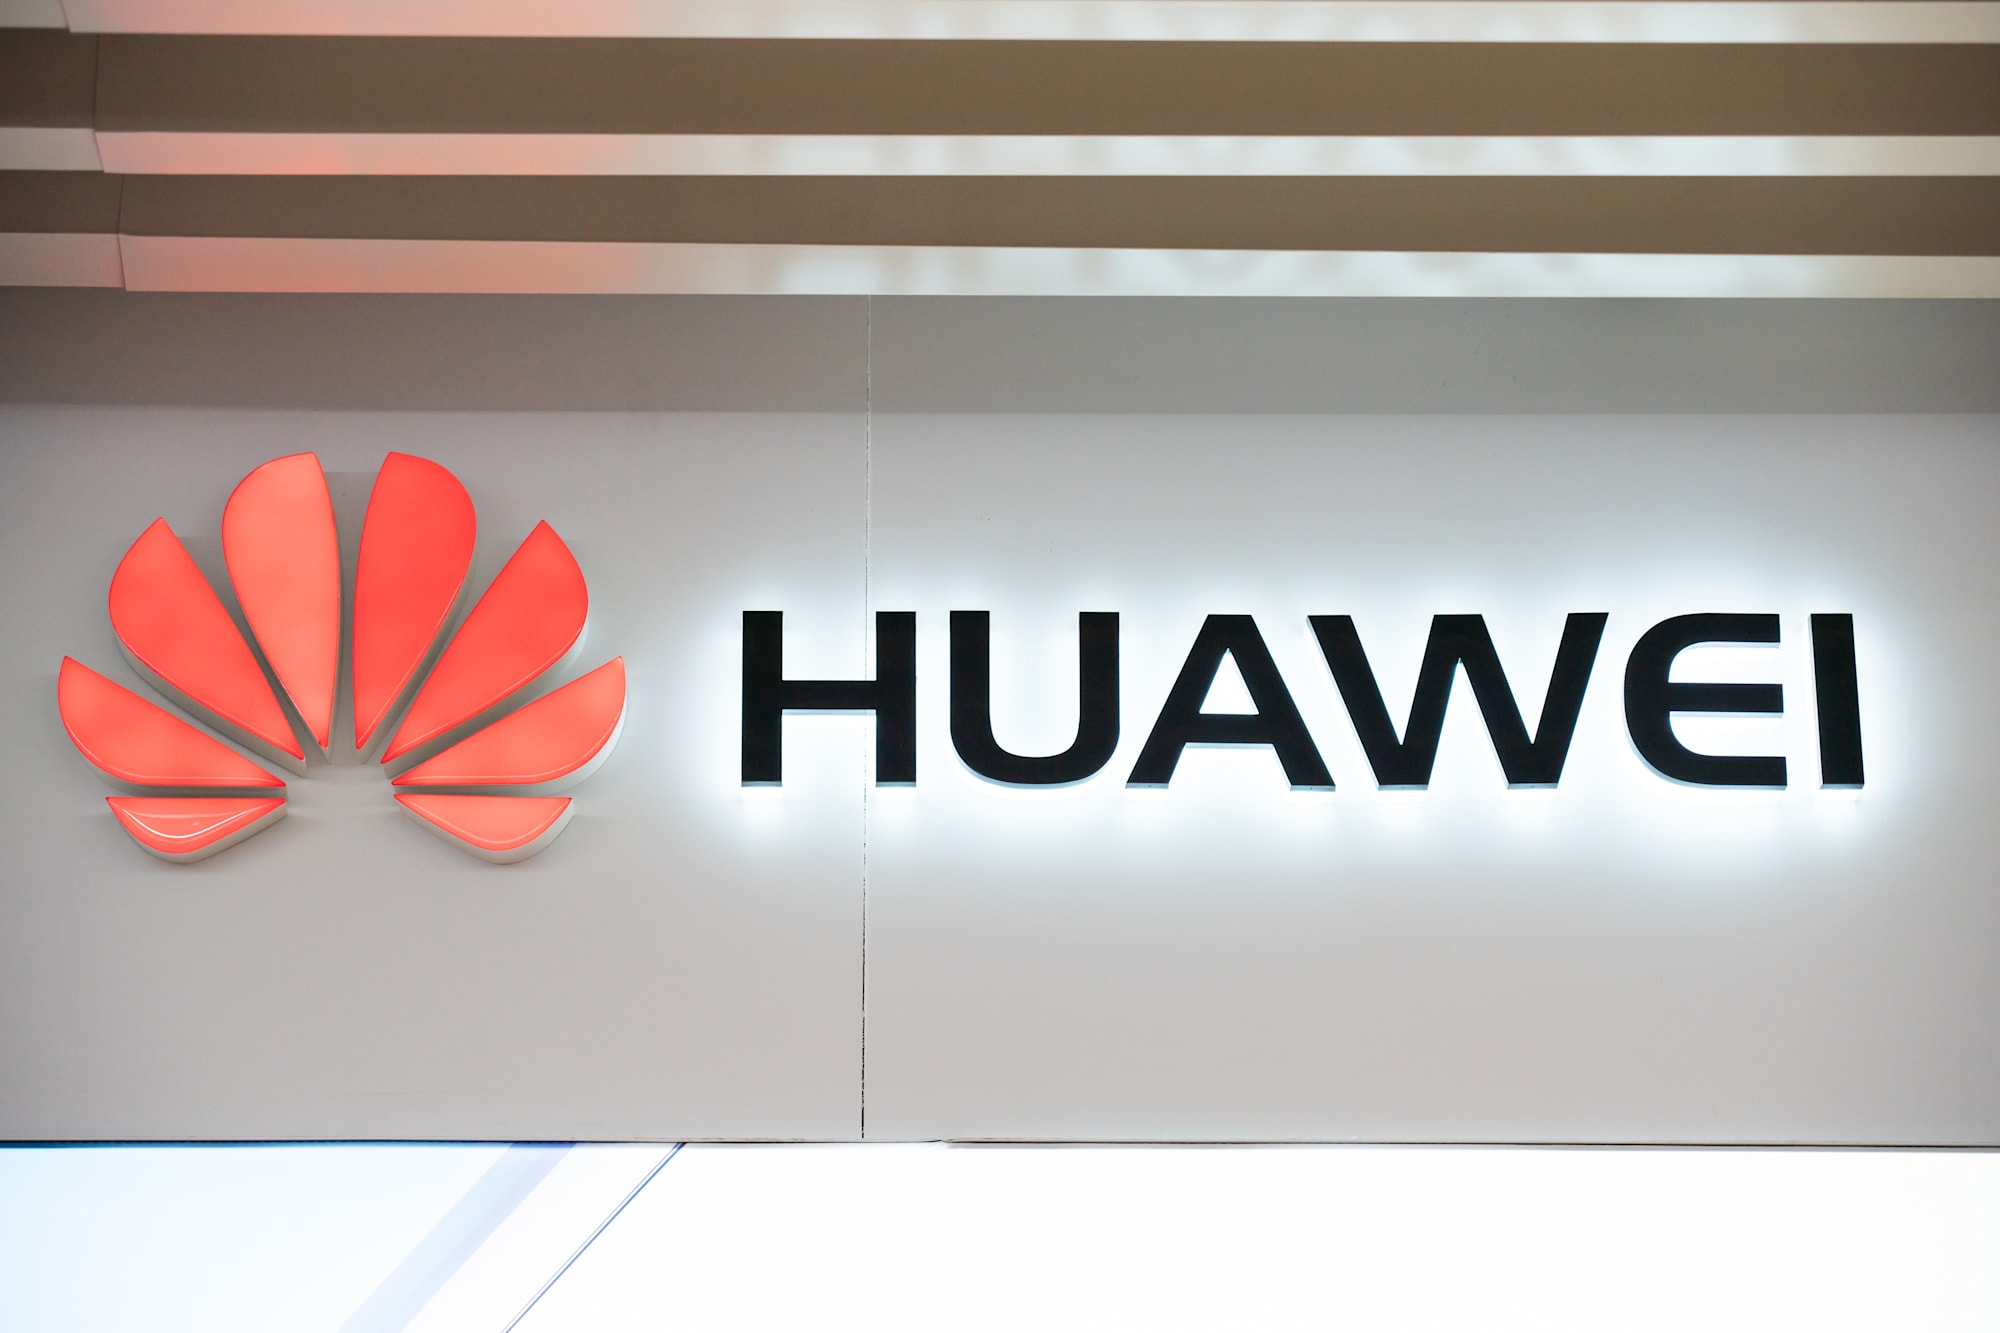 Huawei phone sales increased by over 20 percent despite sanctions